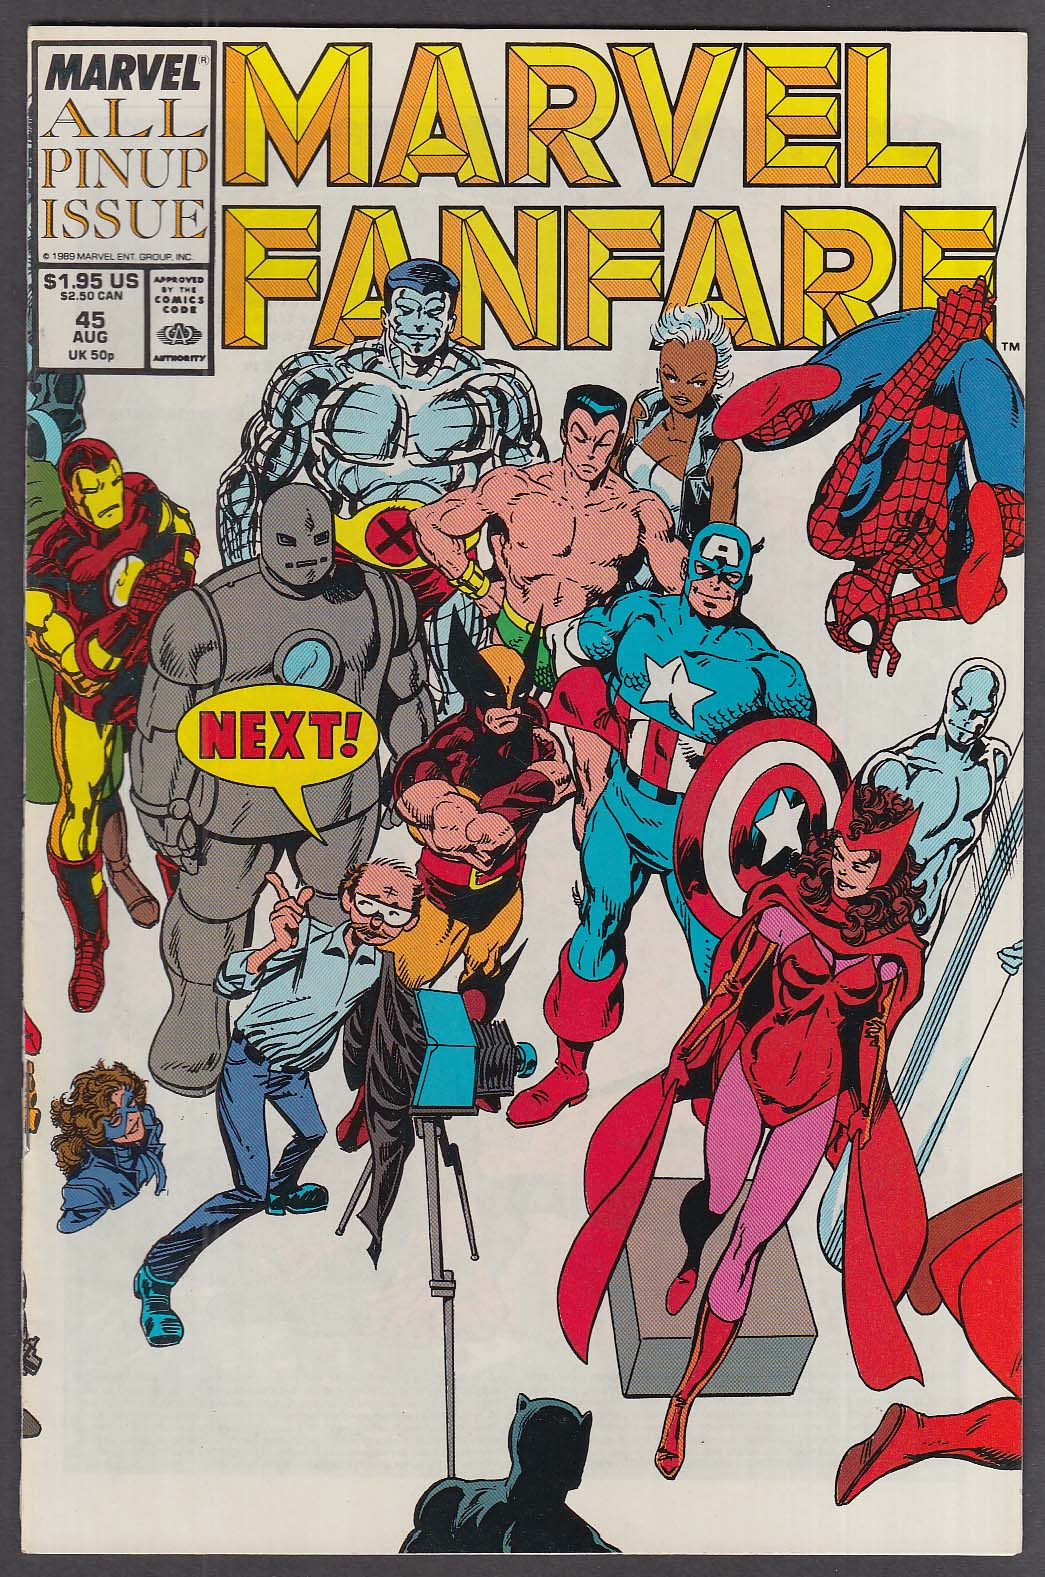 MARVEL FANFARE #45 comic book 8 1989 All Pin-Up Issue Wolverine Spider-Man ++